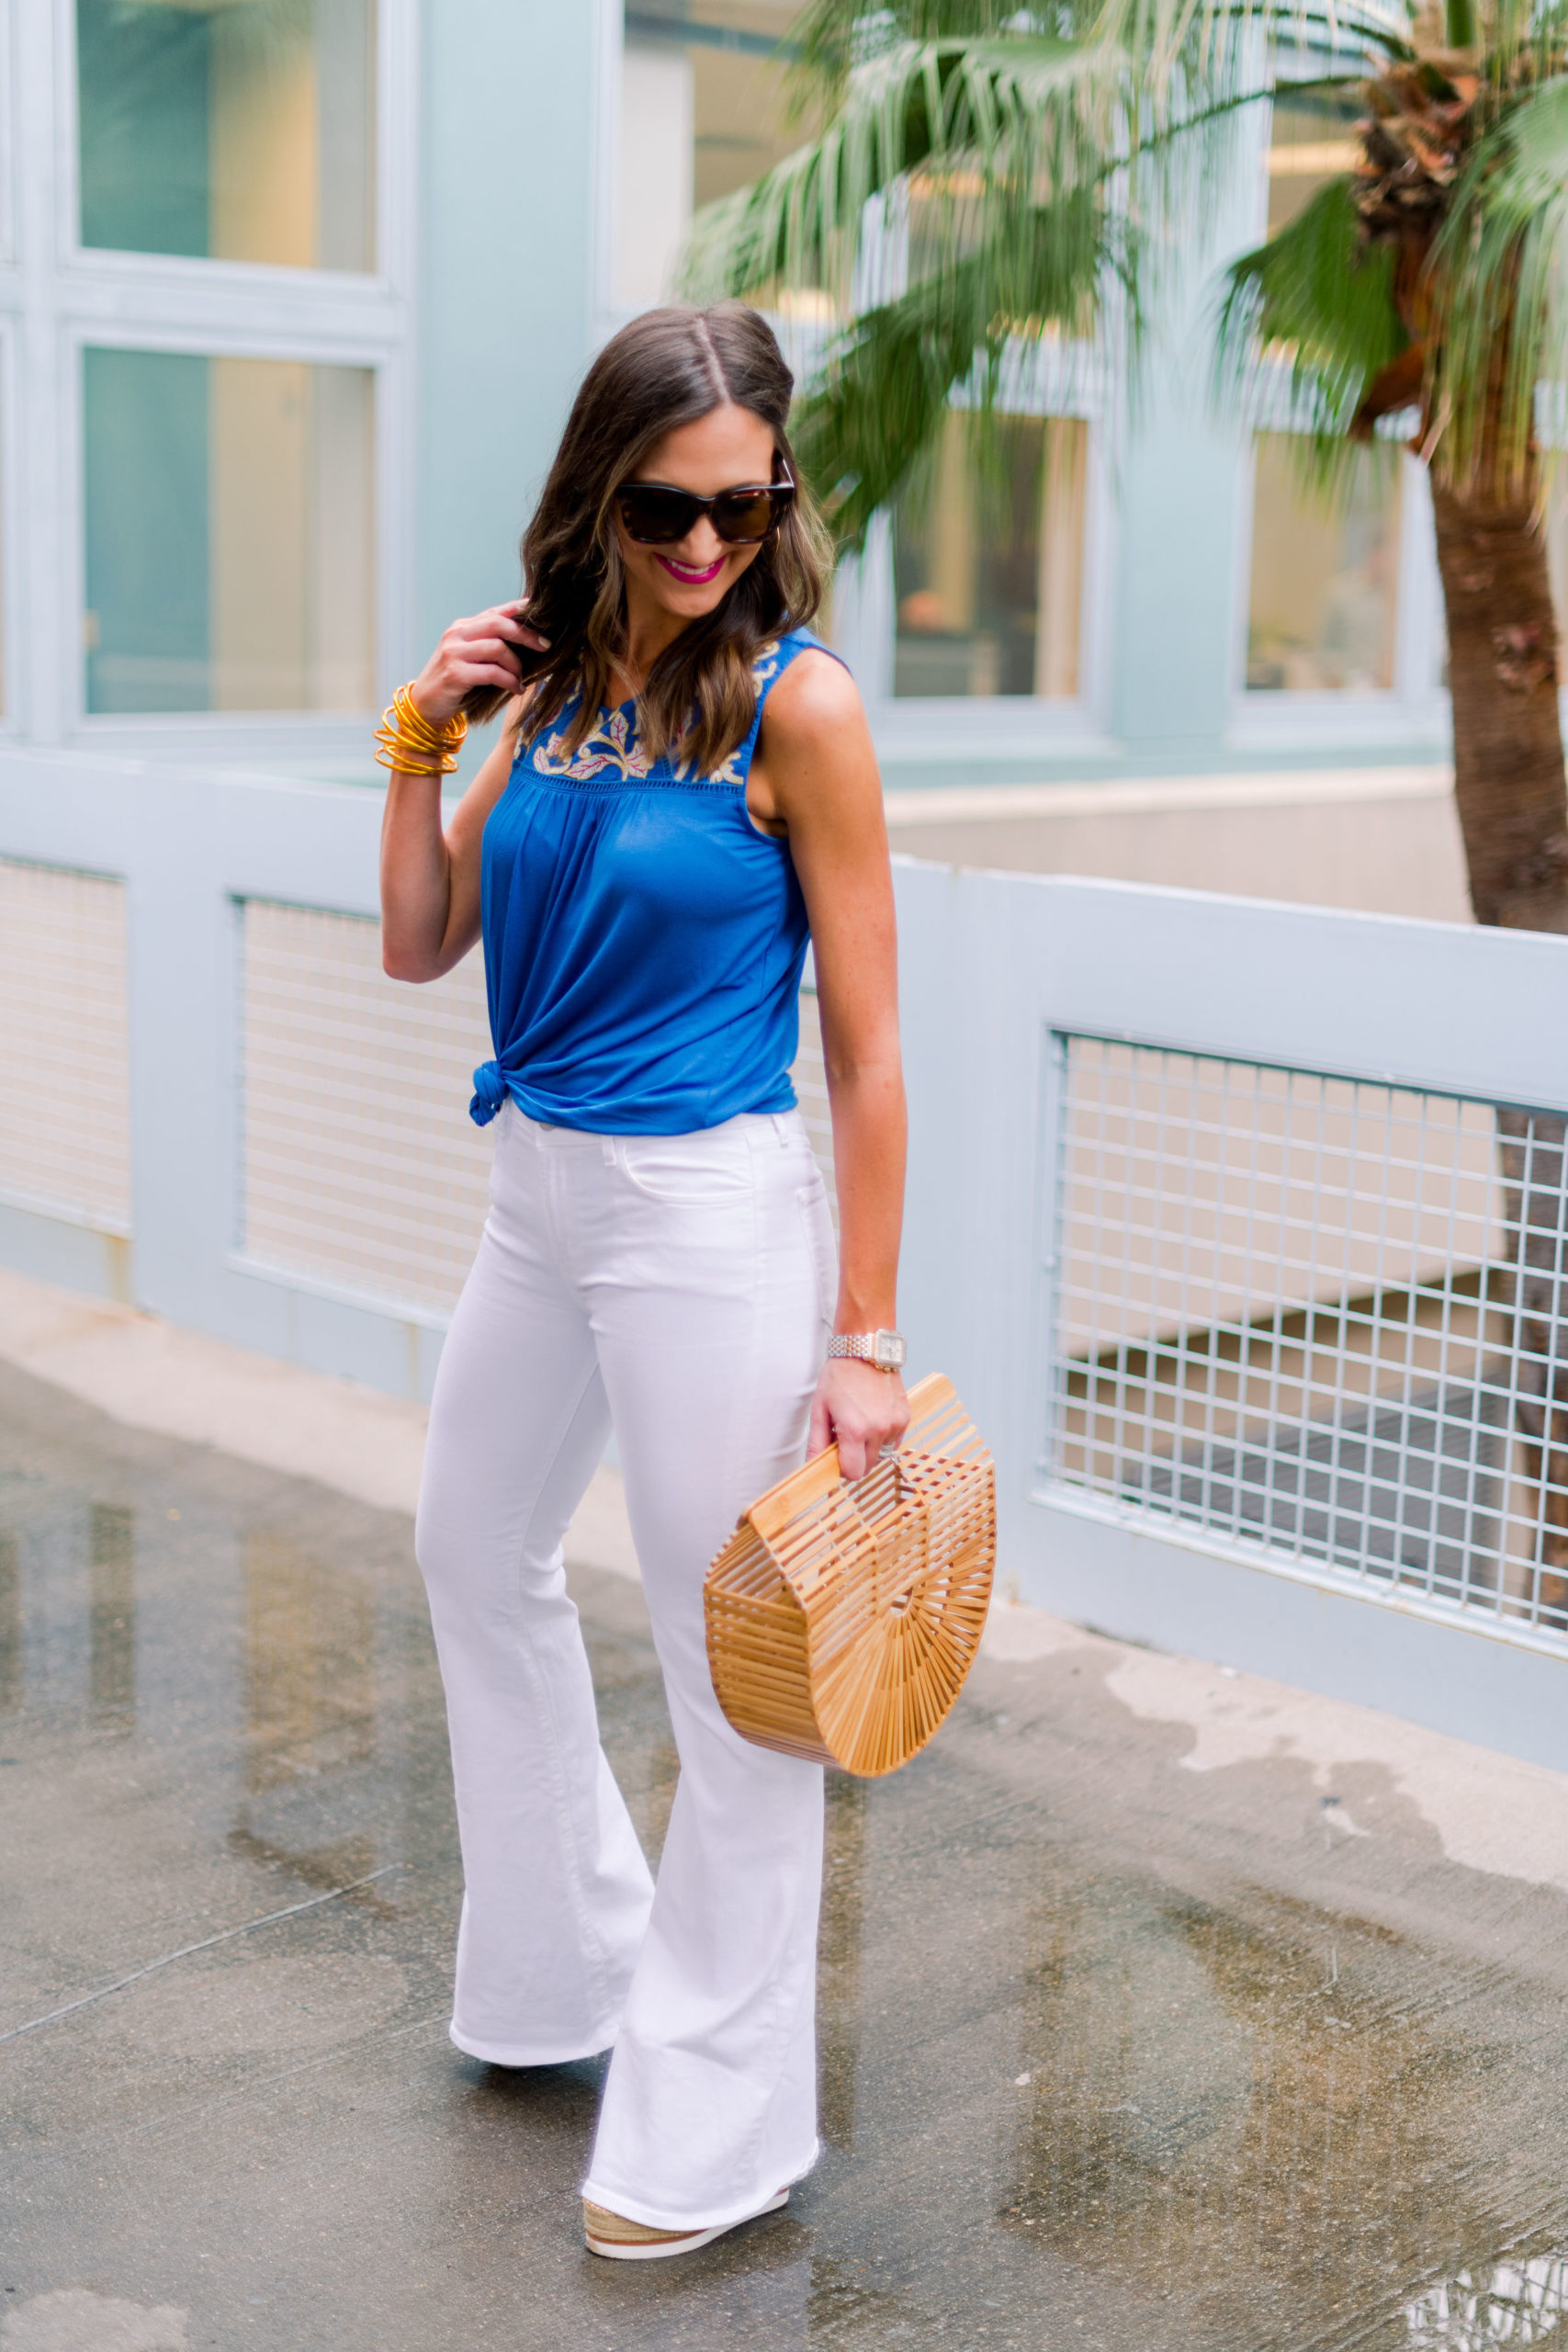 emboridered royal blue top, white flare jeans, panama hat, resort wear, spring outfit, mallory fitzsimmons, style your senses